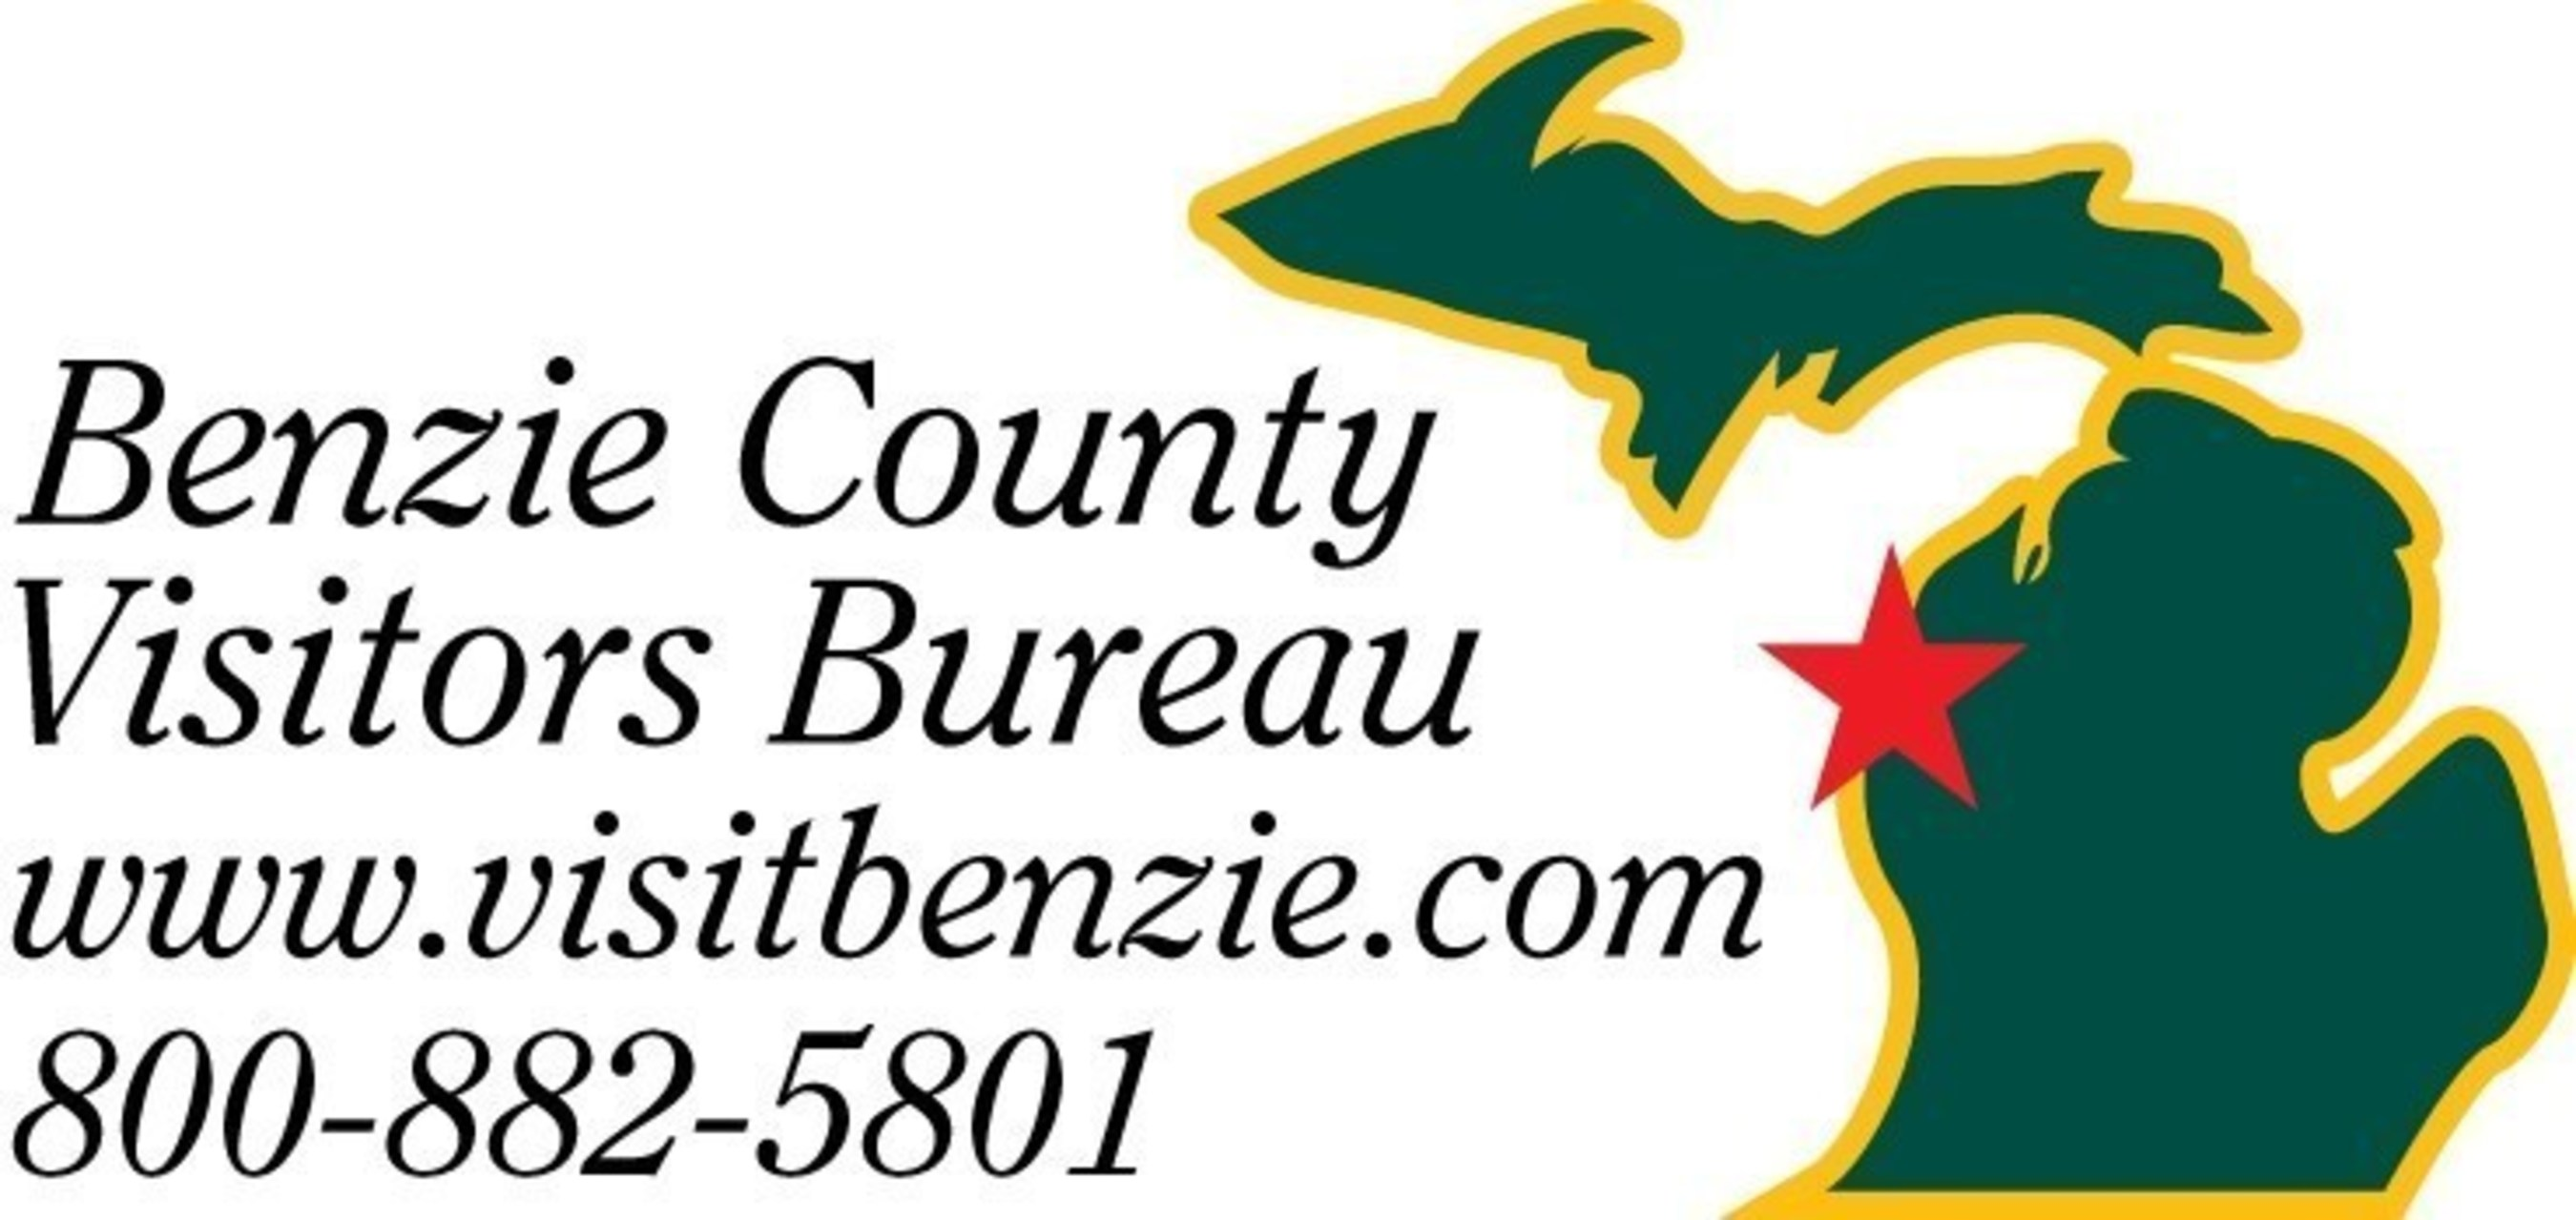 Benzie County Visitors Bureau